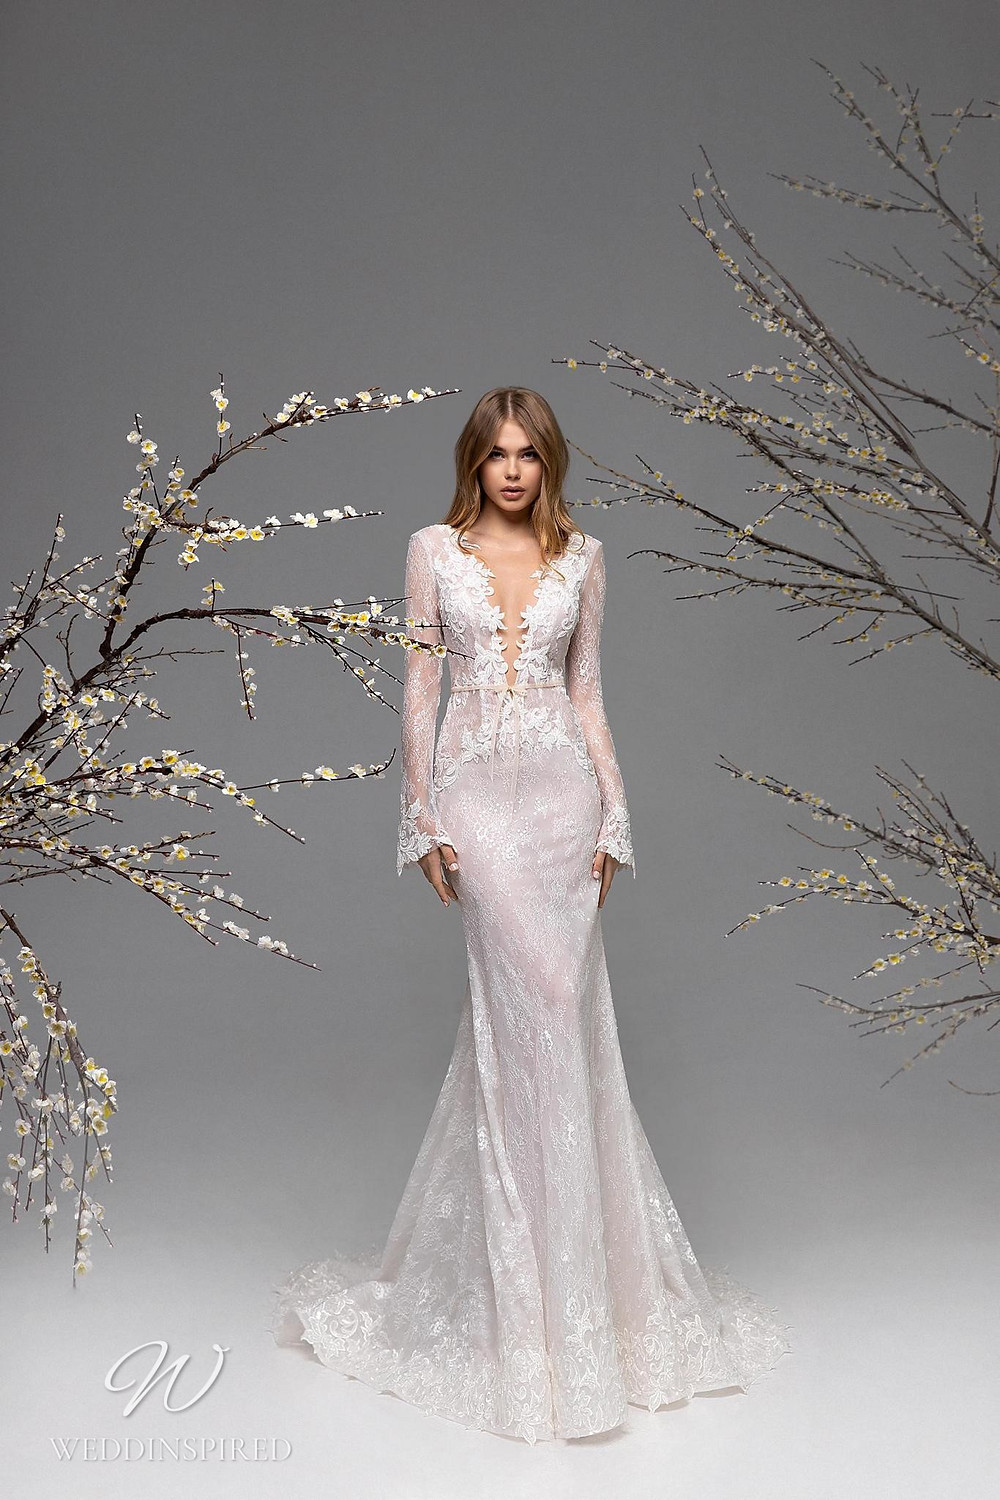 A Ricca Sposa lace mermaid wedding dress with long sleeves